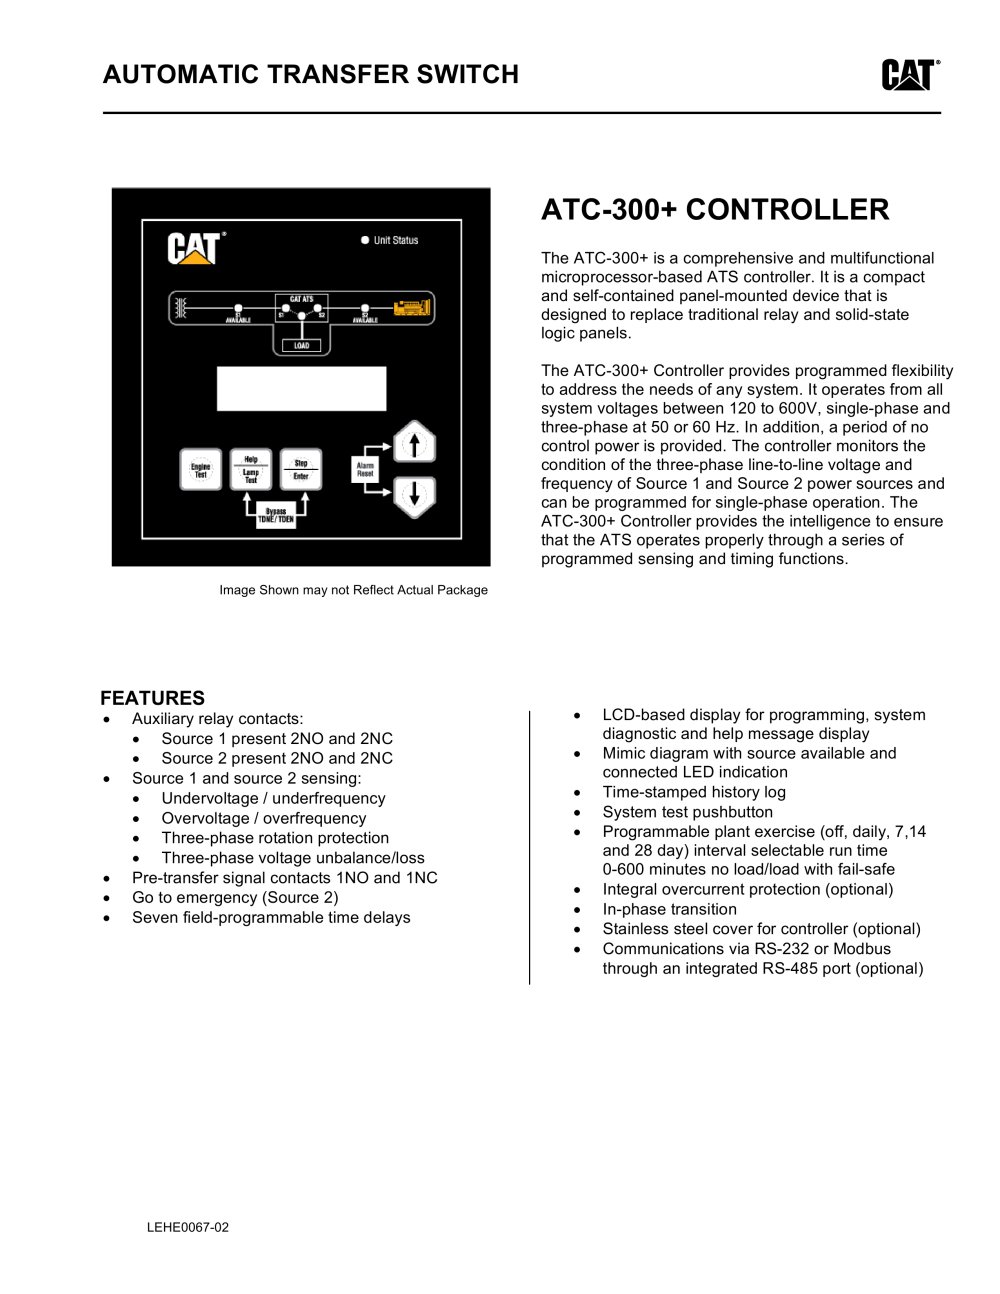 ATC-300+ Controller - 1 / 4 Pages